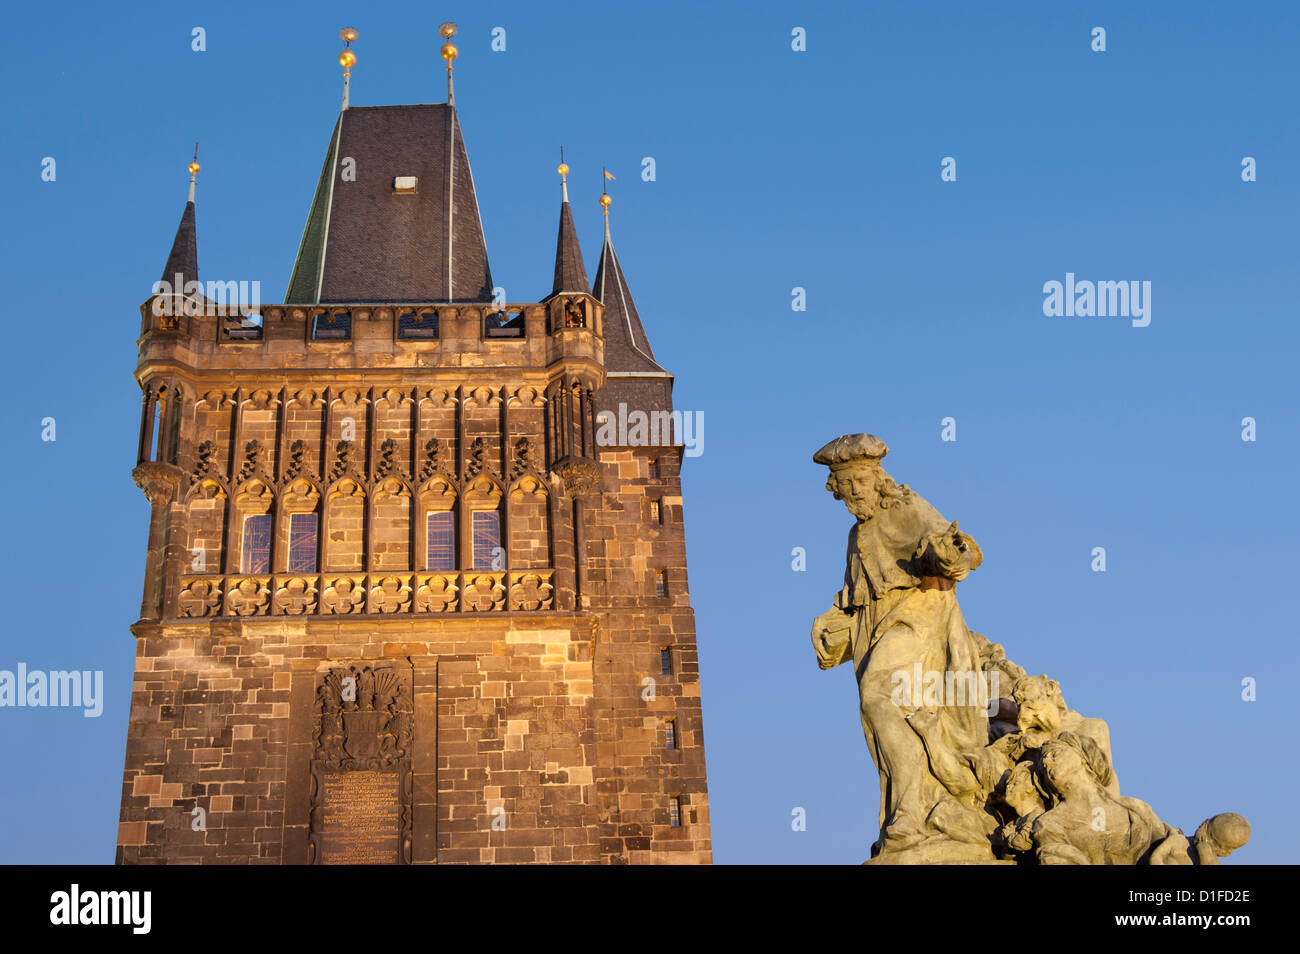 Town Bridge Tower and statue of St. Ivo (Bishop of Chartres) at twilight, Charles Bridge, Old Town, Prague, Czech - Stock Image